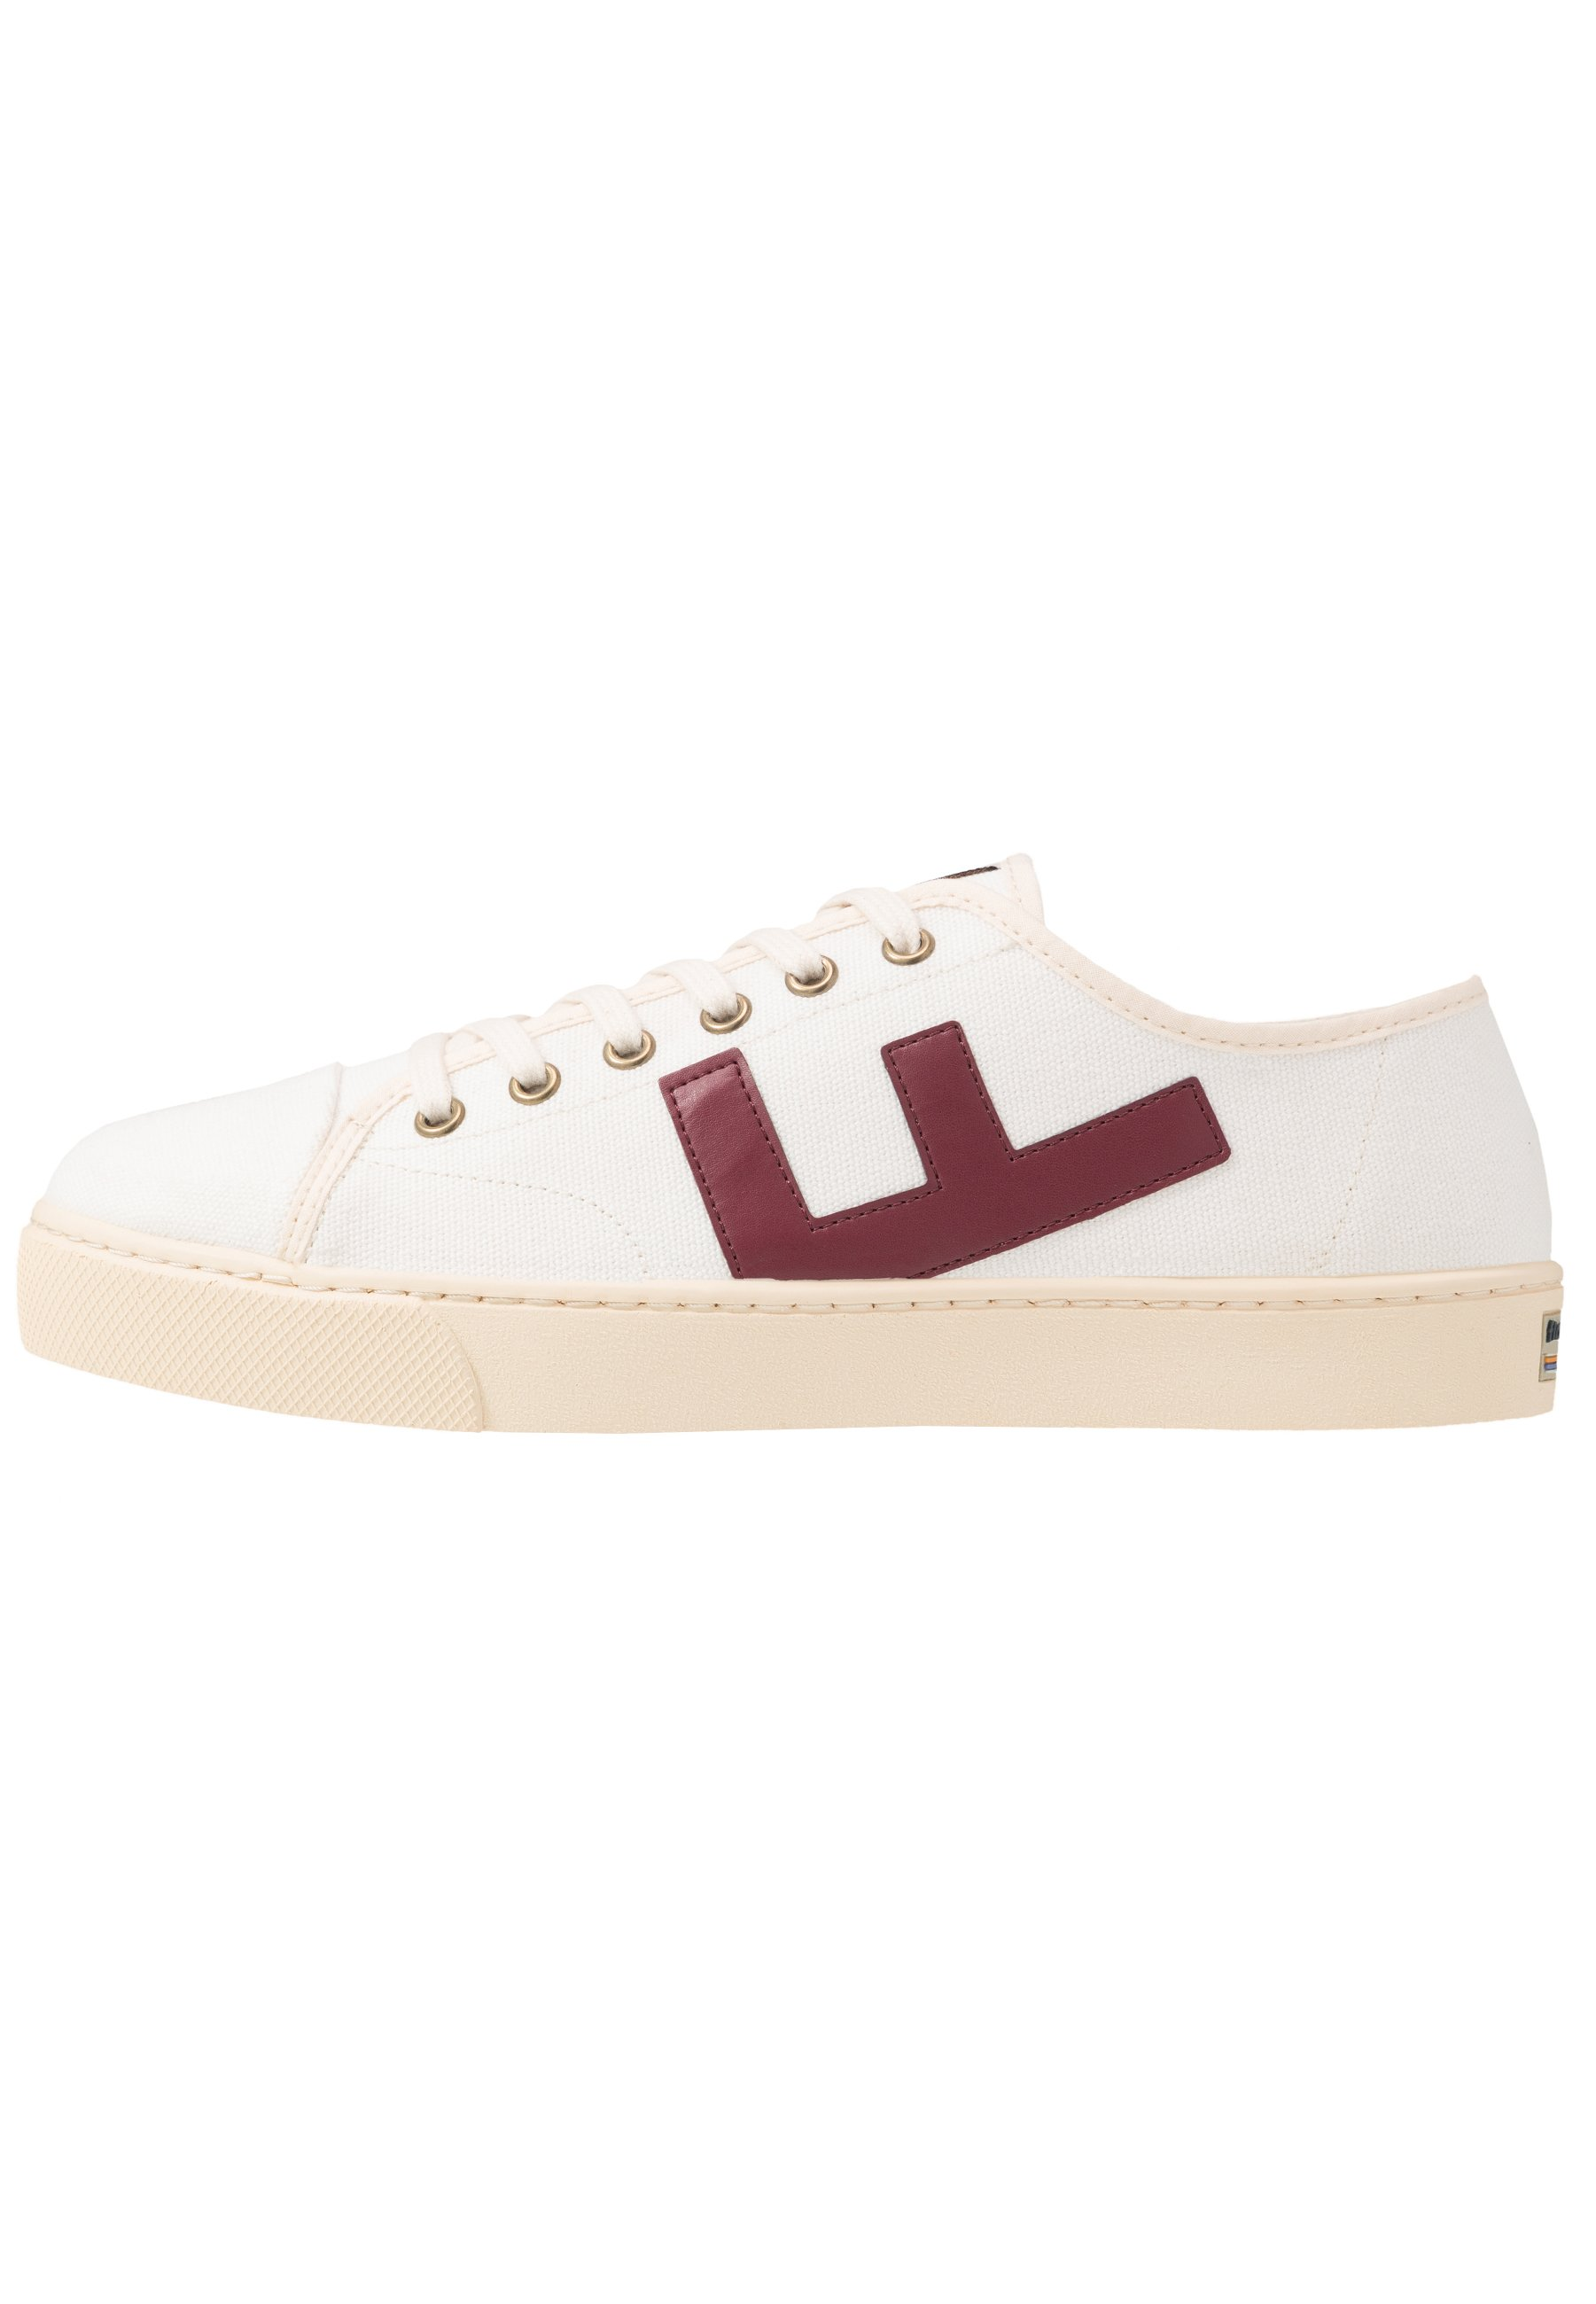 Flamingos' Life Rancho - Sneaker Low White/burgundy/ivory Black Friday